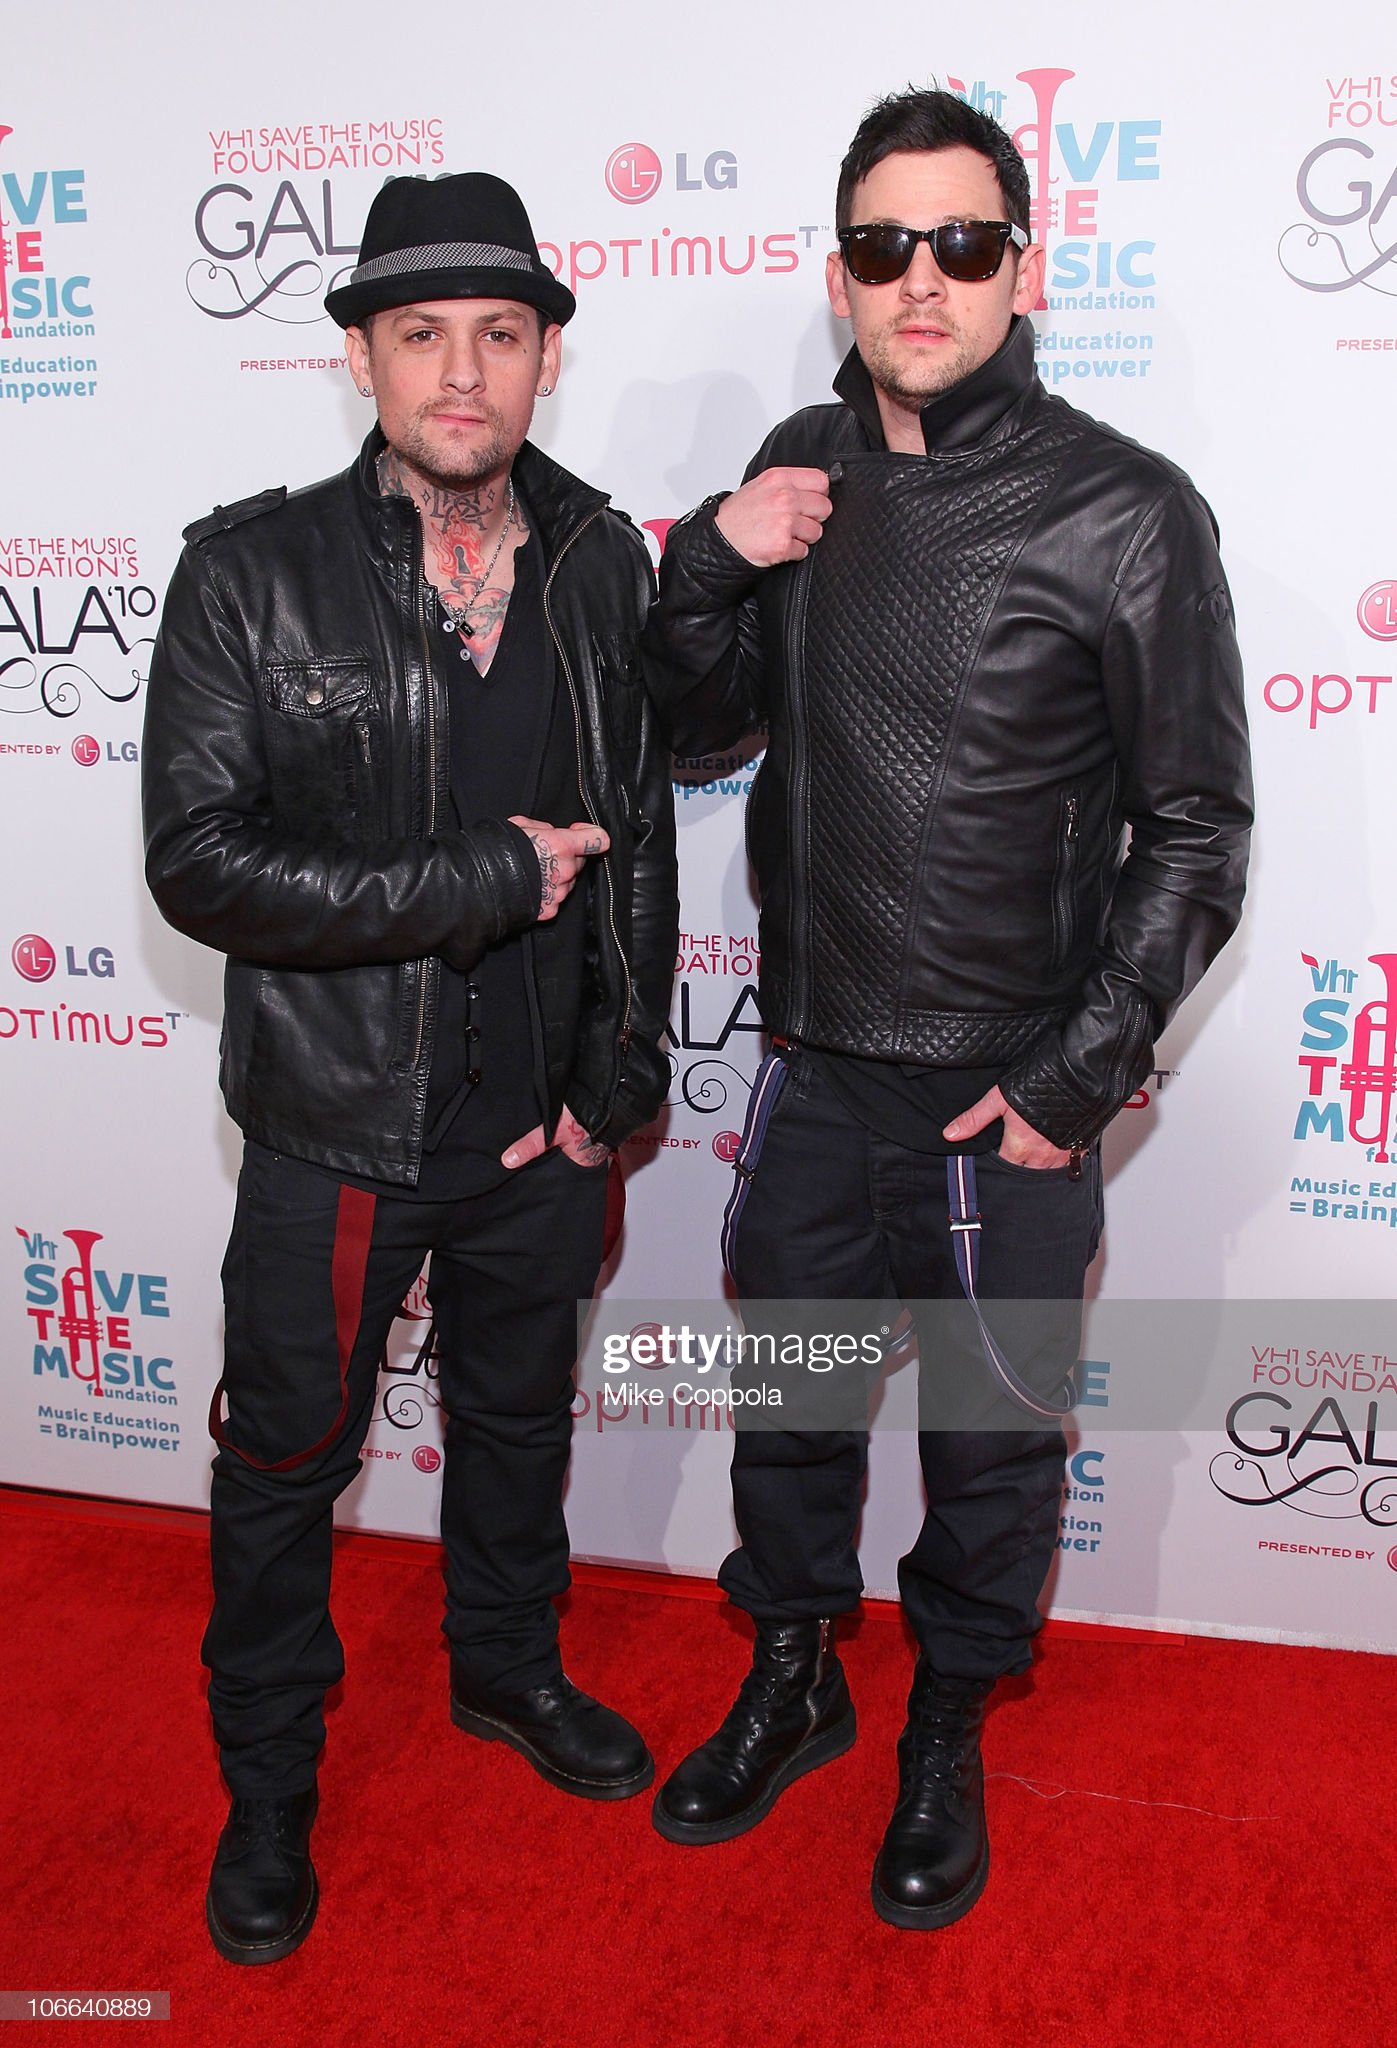 ¿Cuánto mide Benji Madden? - Altura - Real height Musicians-benji-madden-and-joel-madden-of-the-band-good-charlotte-picture-id106640889?s=2048x2048